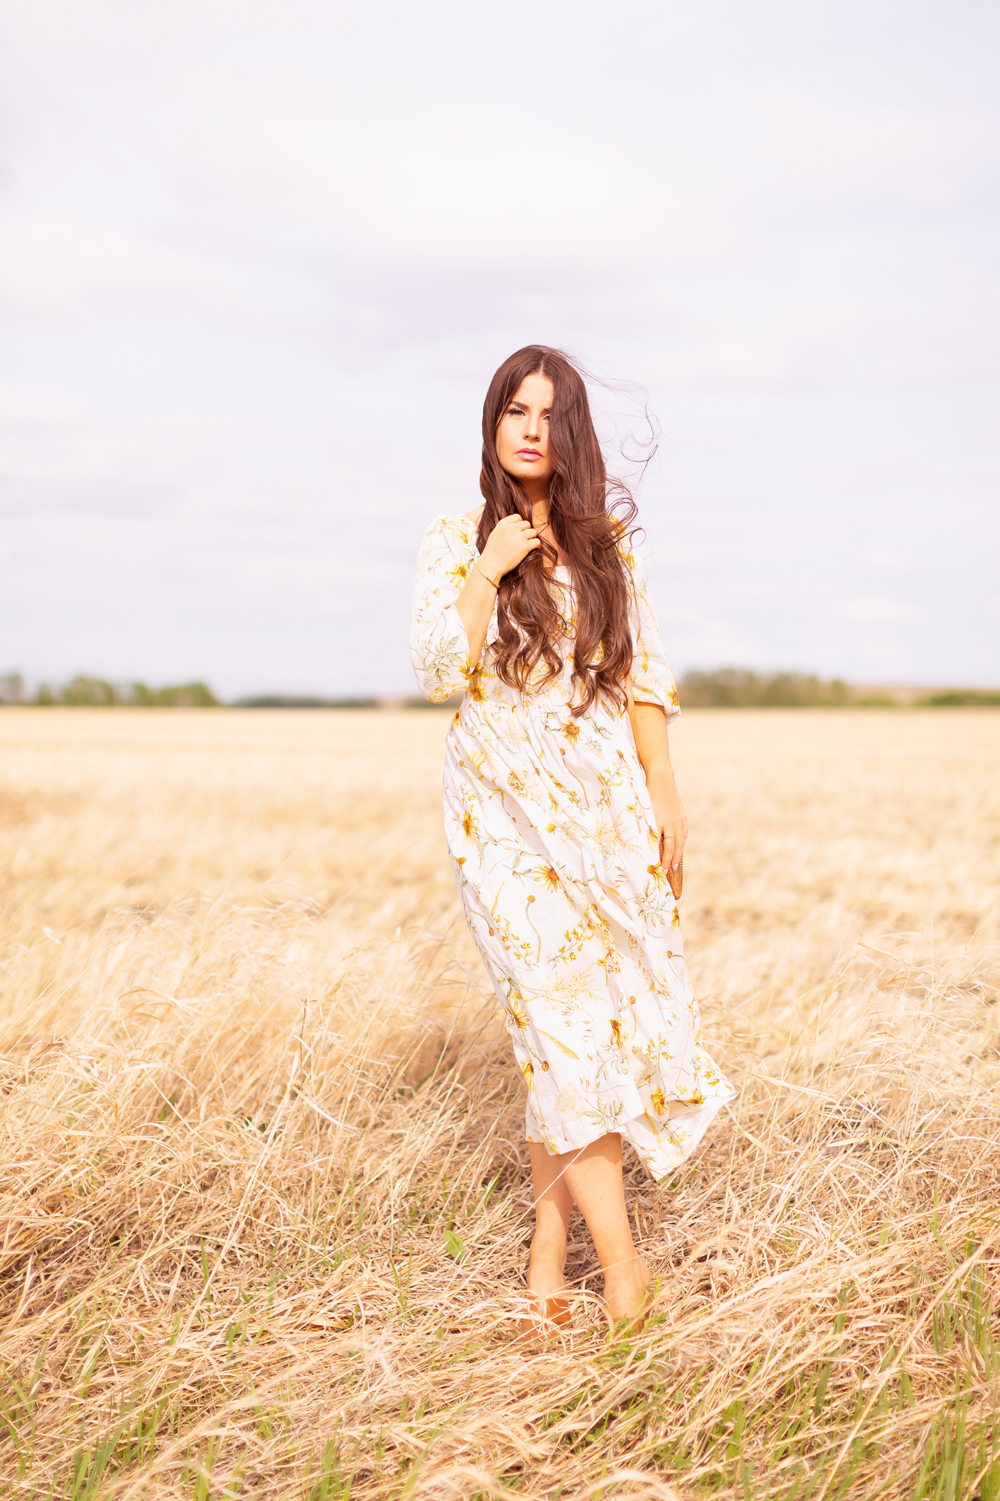 H&M Wildflower Collection Review | Brunette woman wearing a H&M A Meadow of Wildflowers Collection Long Crinkled Dress sitting in a wheat field in the wind | H&M Wildflower Collection Canada | H&M Wildflower Collection Canada | Spring/Summer 2021 Trends | The Best Cotton Dresses 2021 | Boho Spring / Summer Outfit Ideas | The Best H&M Dresses Summer 2021 | Alberta Wildflower Field | Cottage Core Fashion | Cottagecore Outfits | Calgary Creative Lifestyle & Fashion Blogger // JustineCelina.com